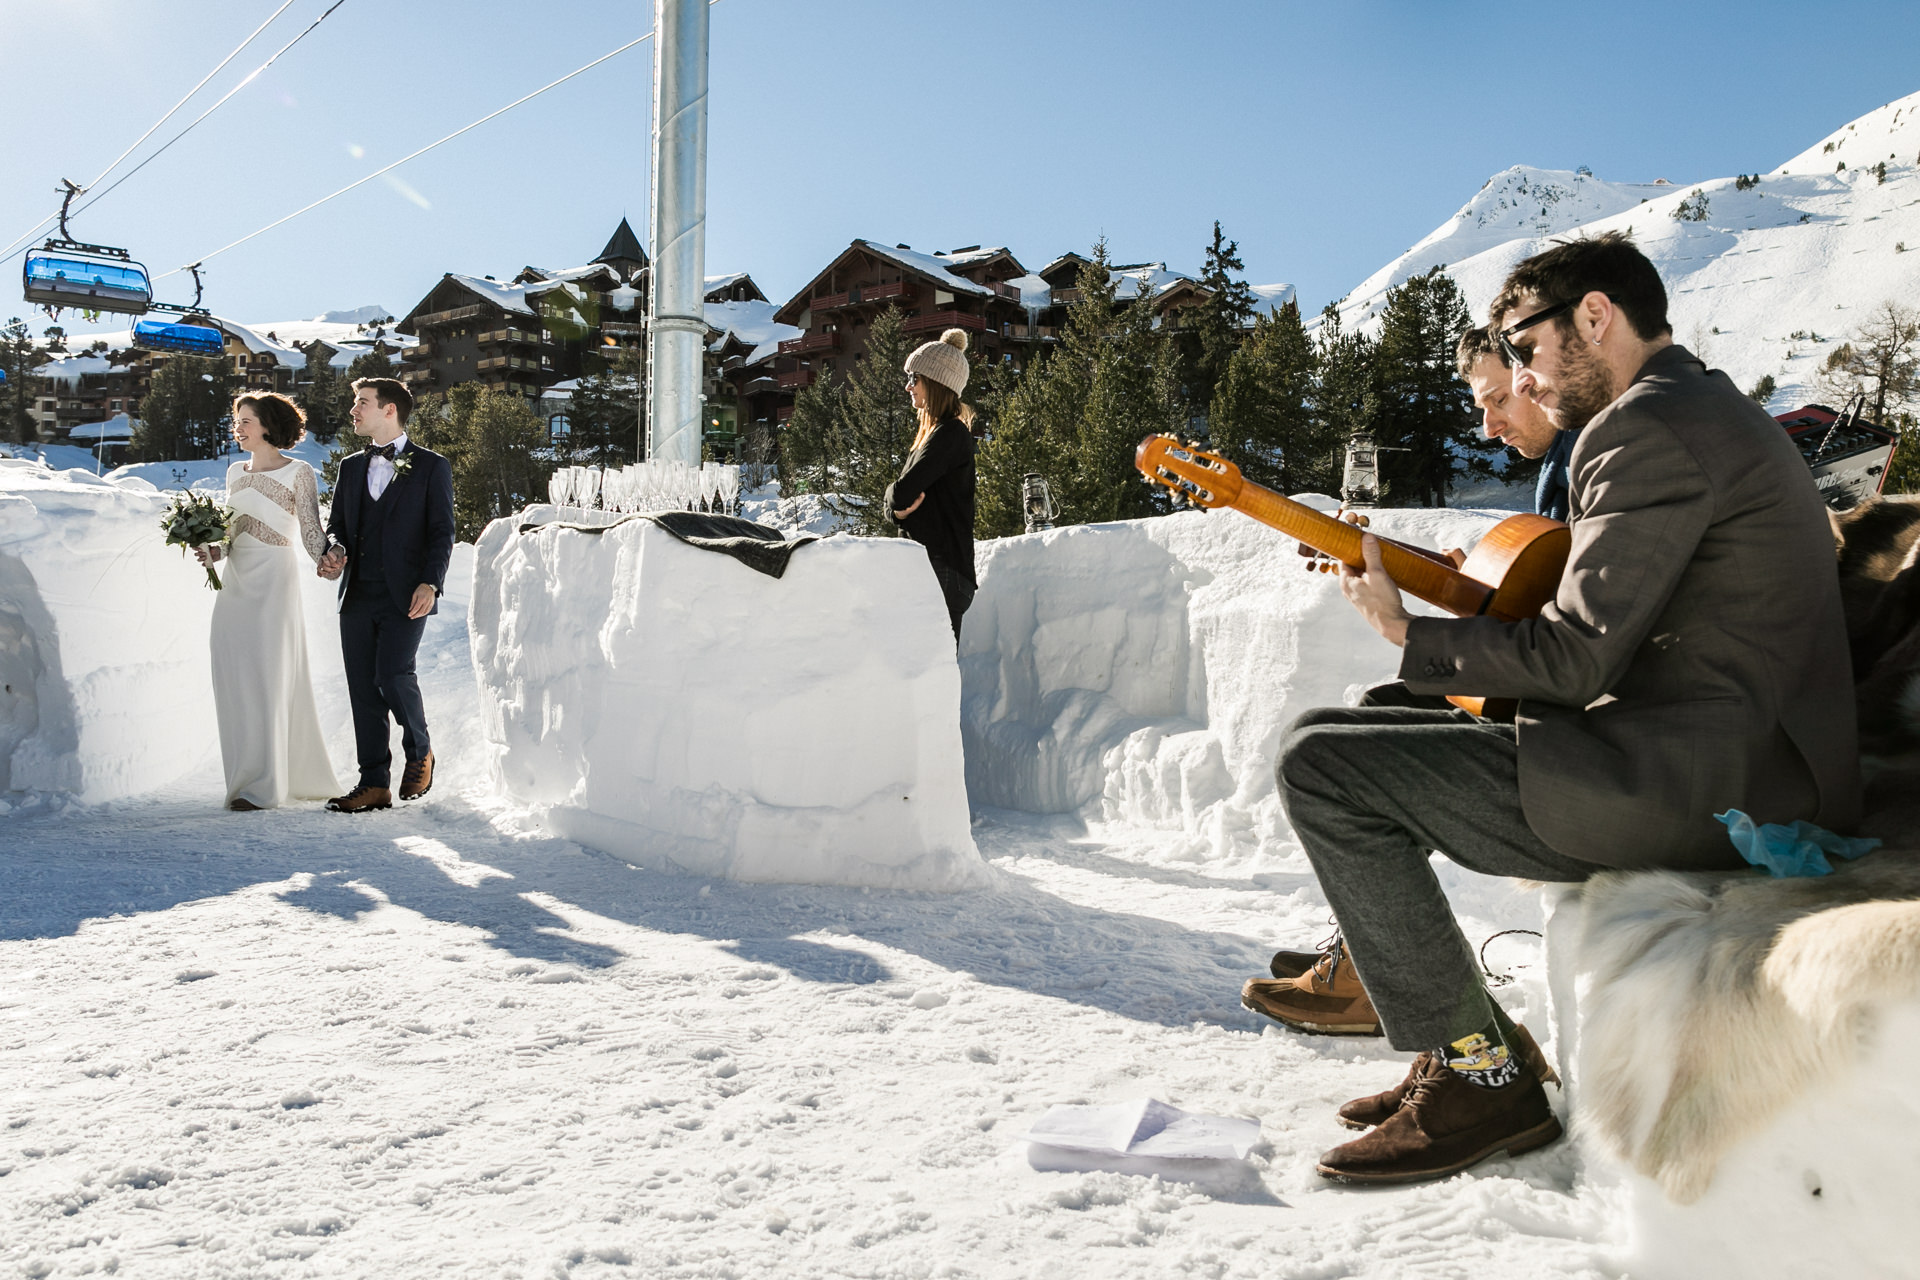 Alpine-style Ski Chalet Elopement Ceremony Photography | The bride and groom begin the ceremony at the top of the mountain